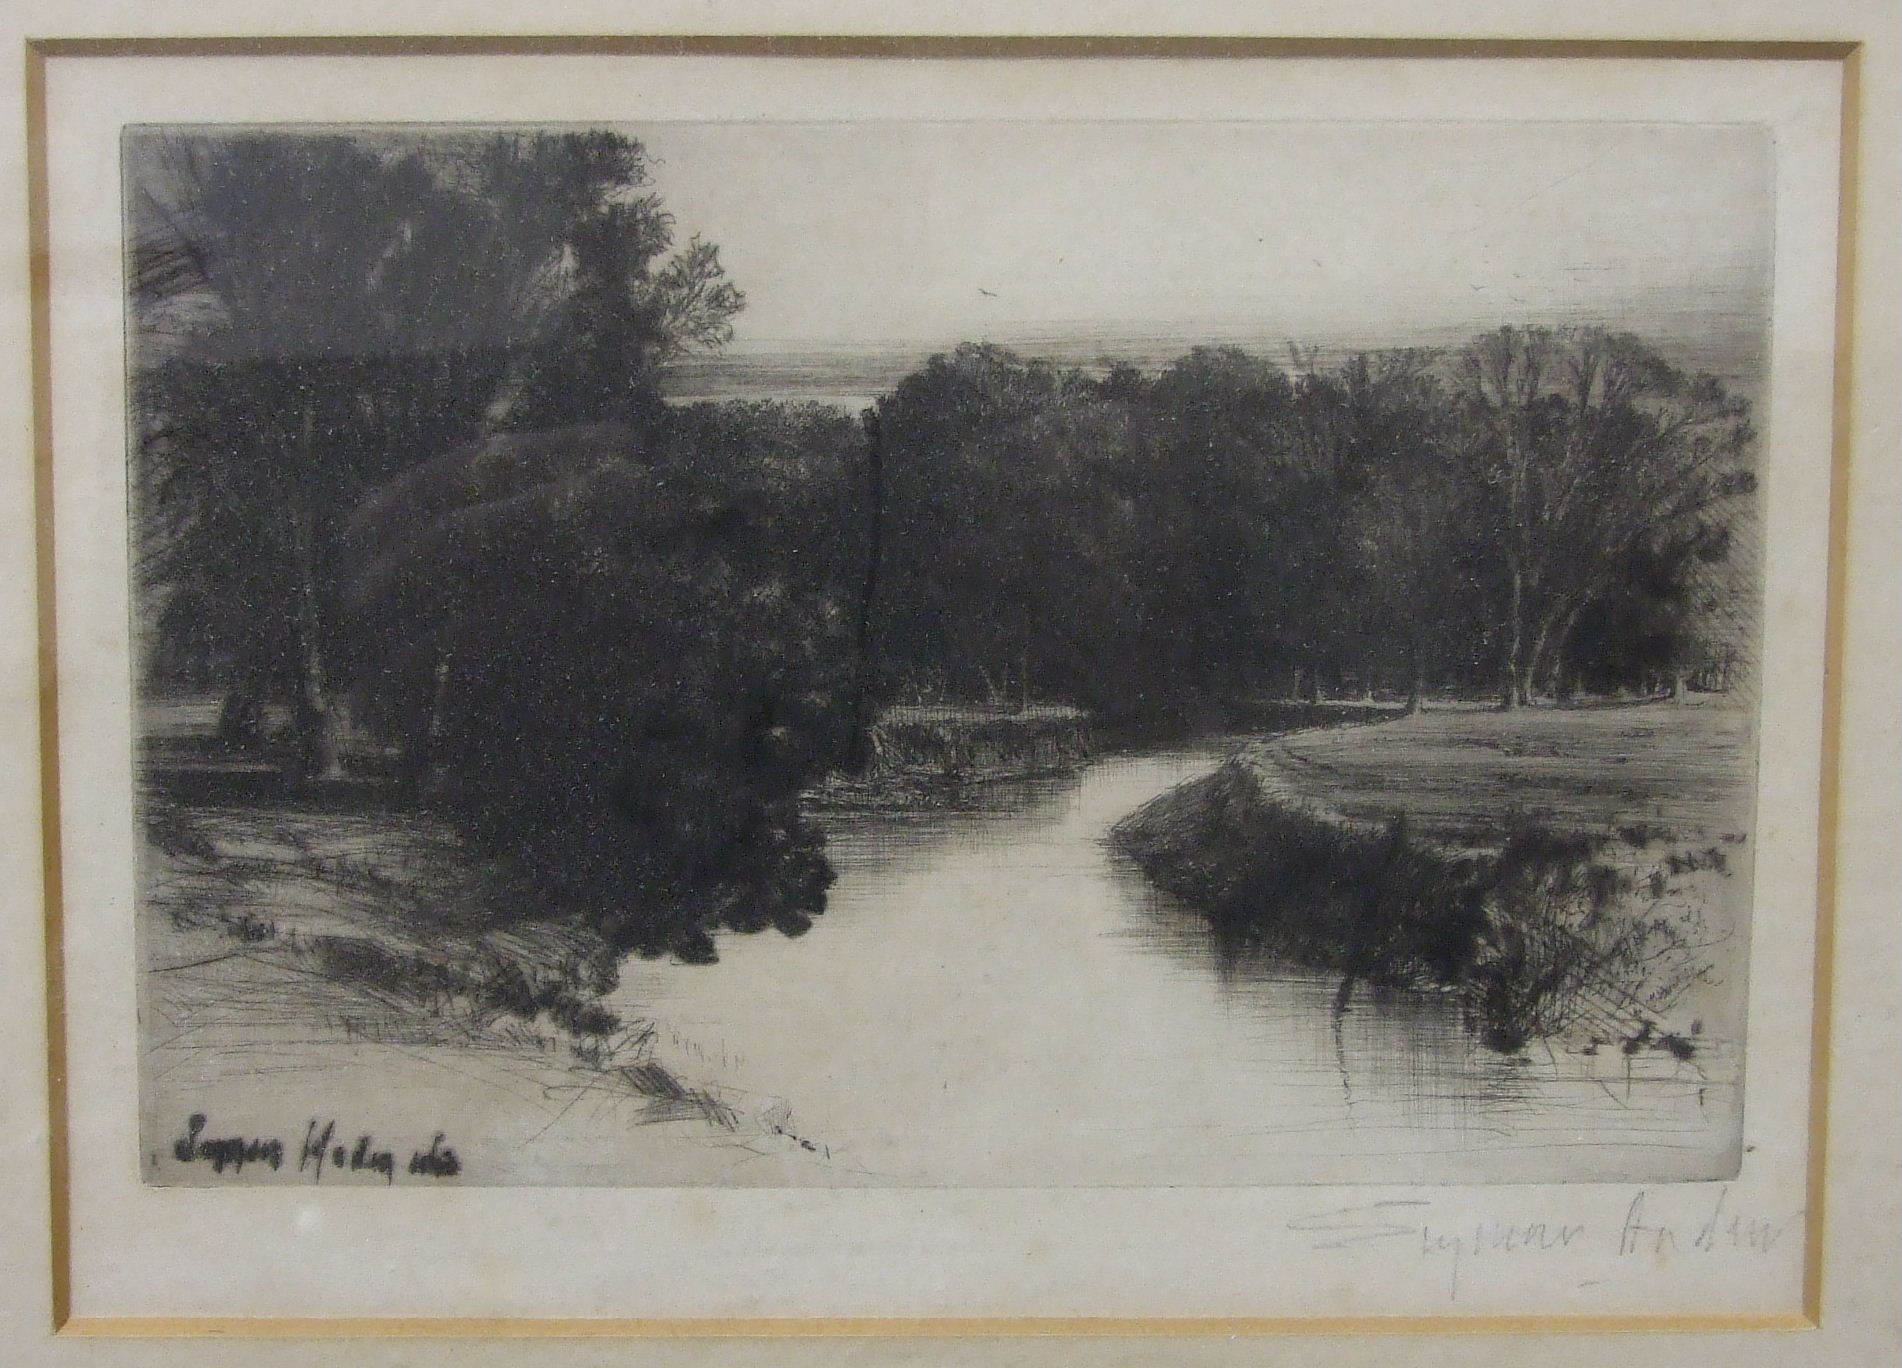 Lot 33 - Edgar L Pattison, (b1872) 'A Canal in Normandy', etching, signed and titled in pencil in the margin,